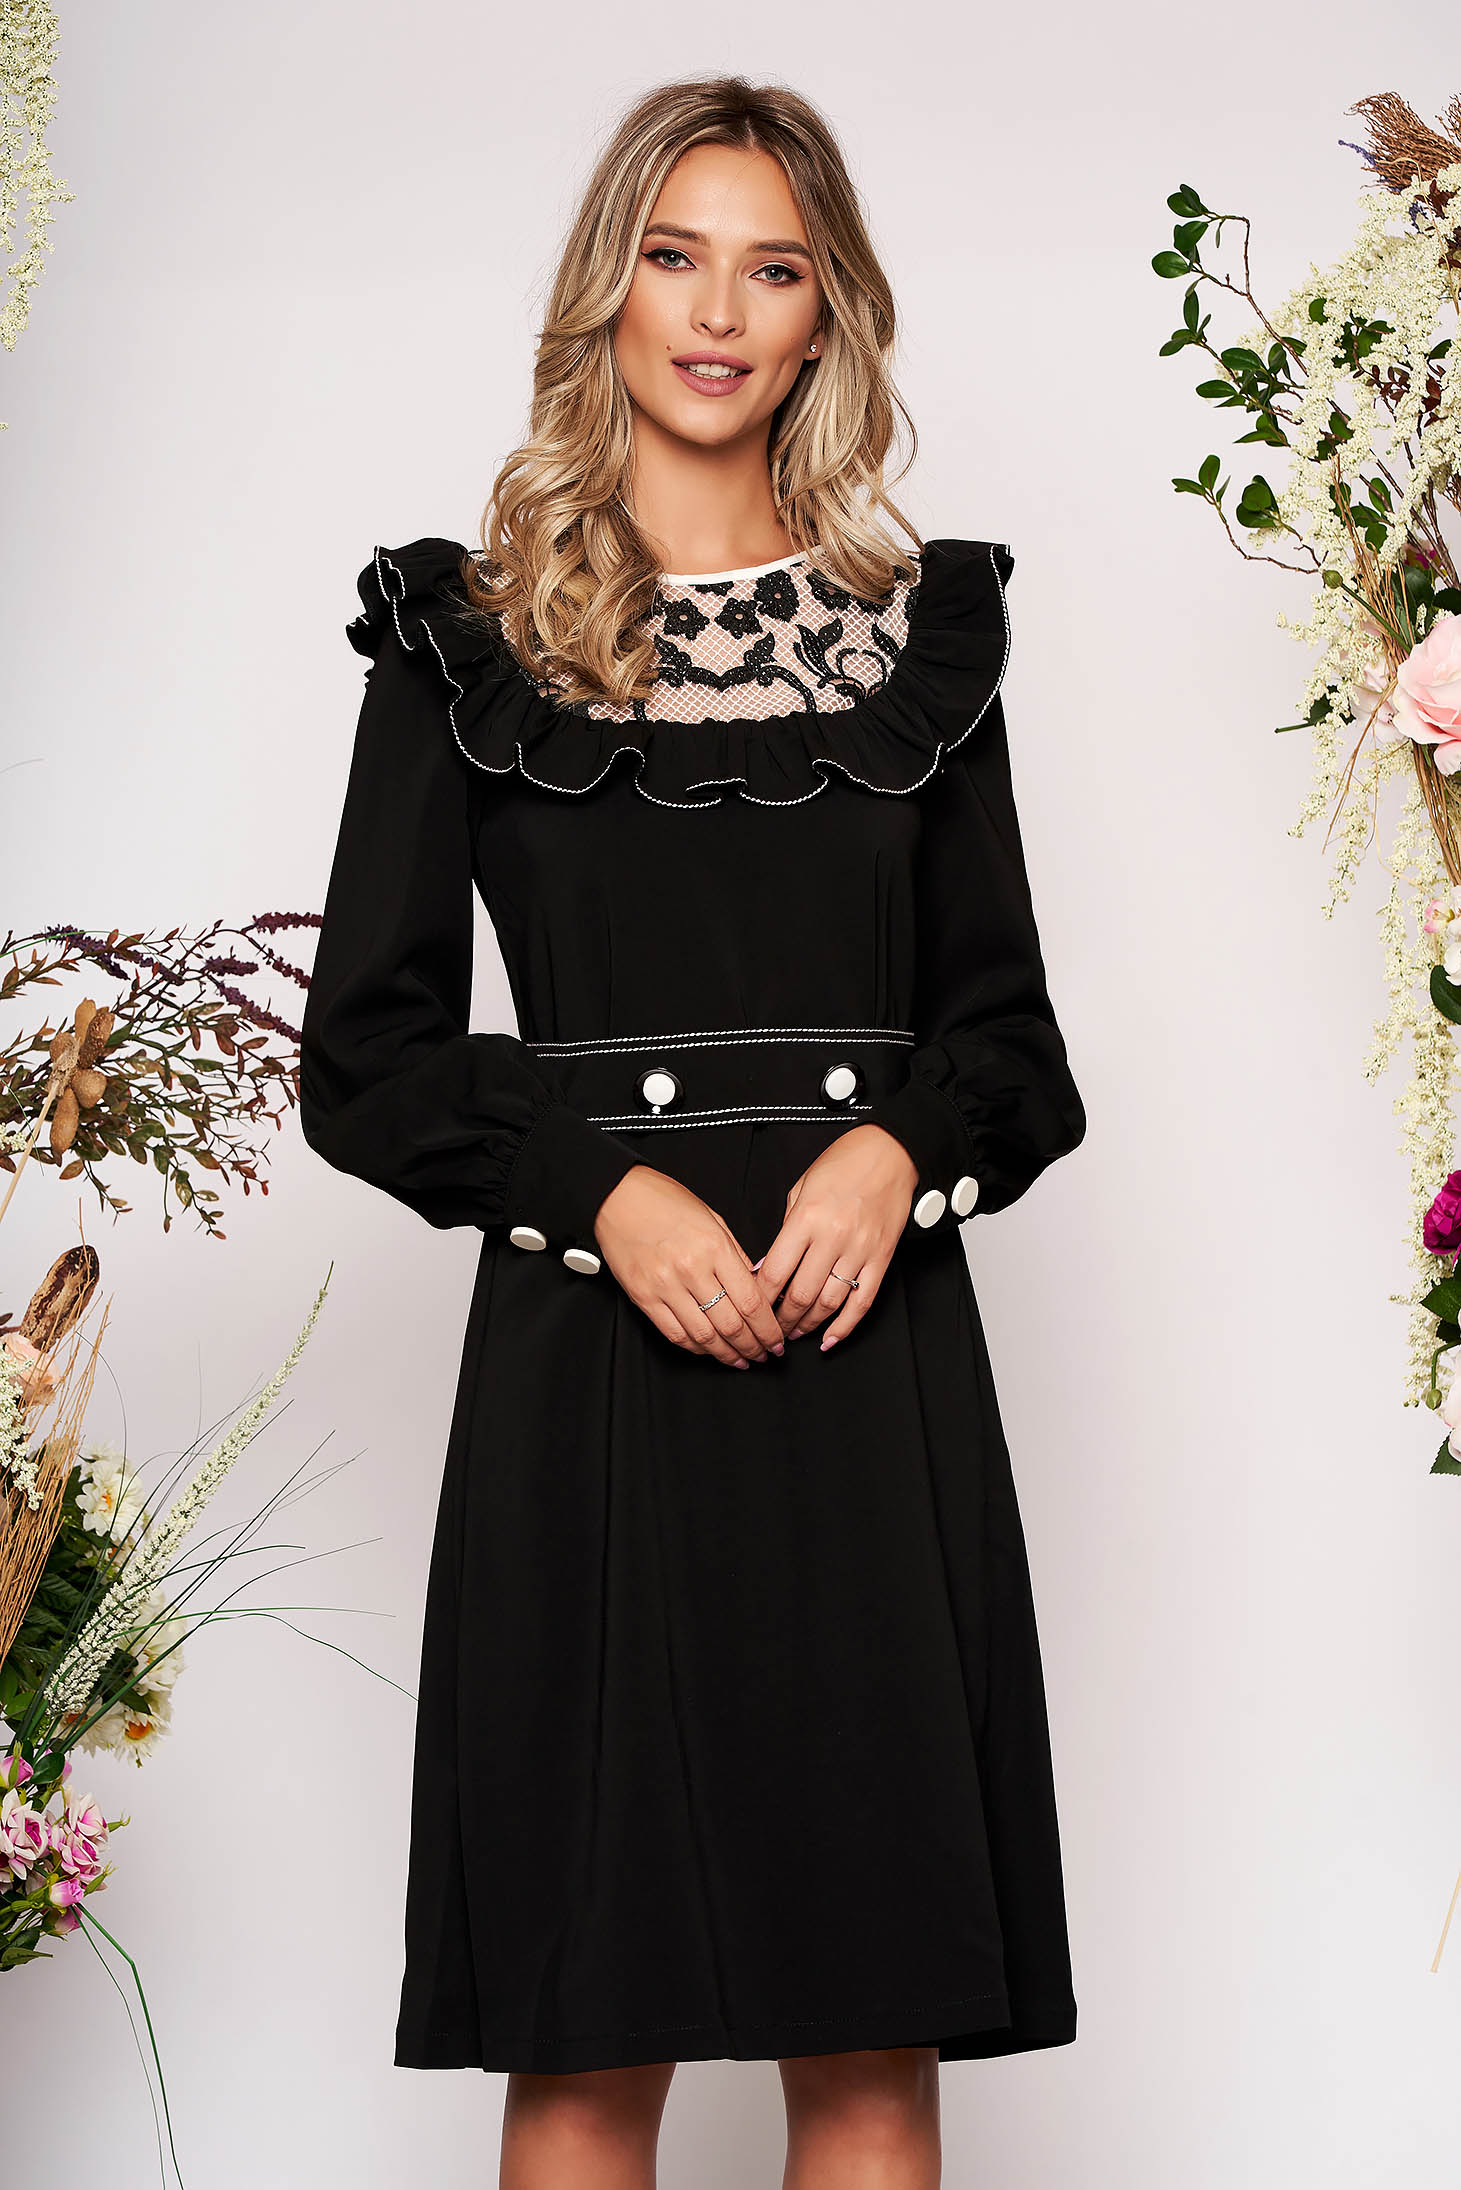 LaDonna black elegant dress from non elastic fabric with ruffle details with lace details accessorized with tied waistband